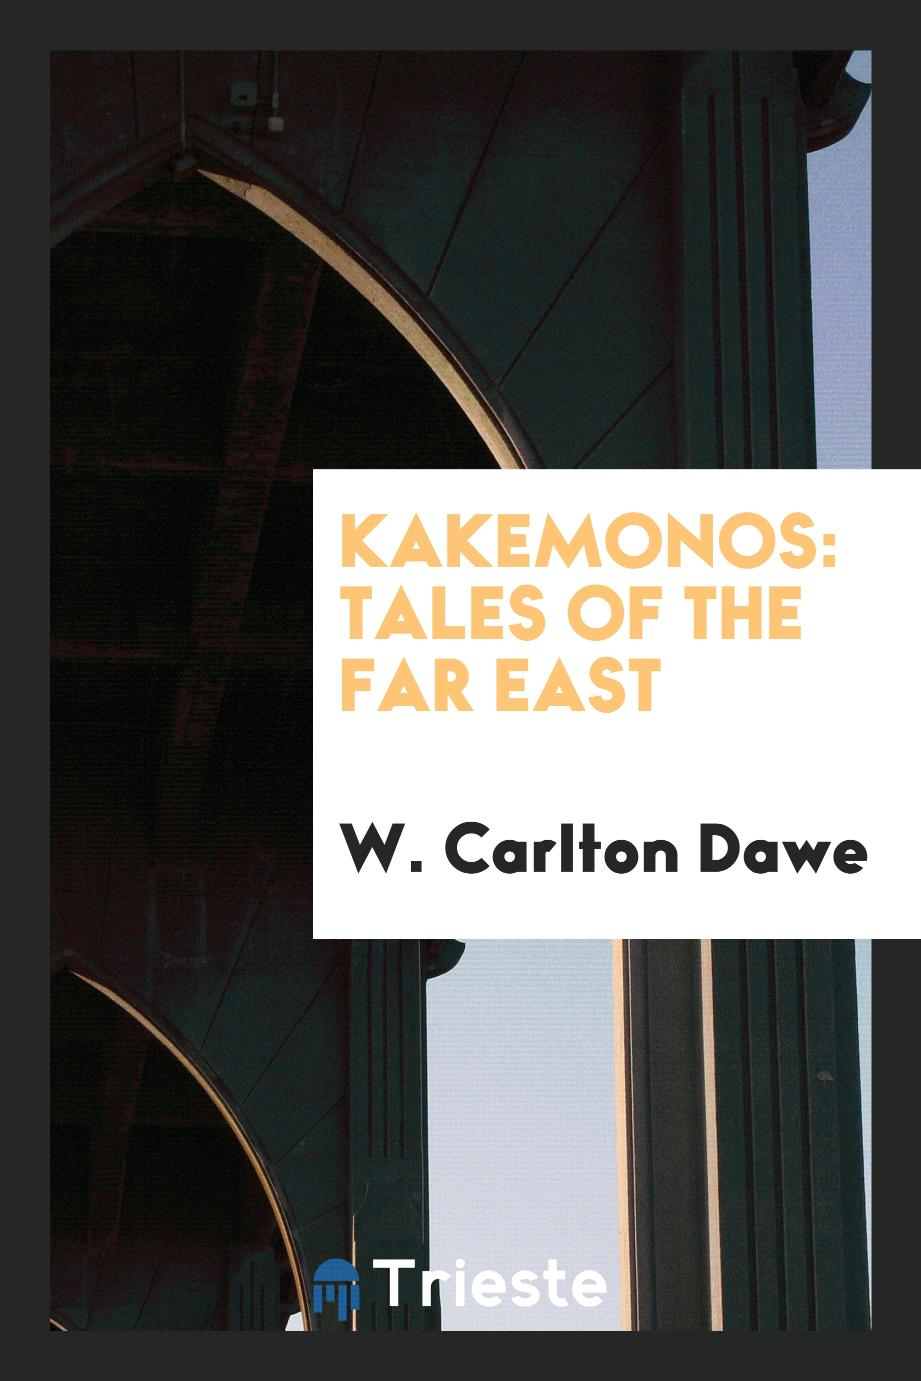 Kakemonos: tales of the Far East